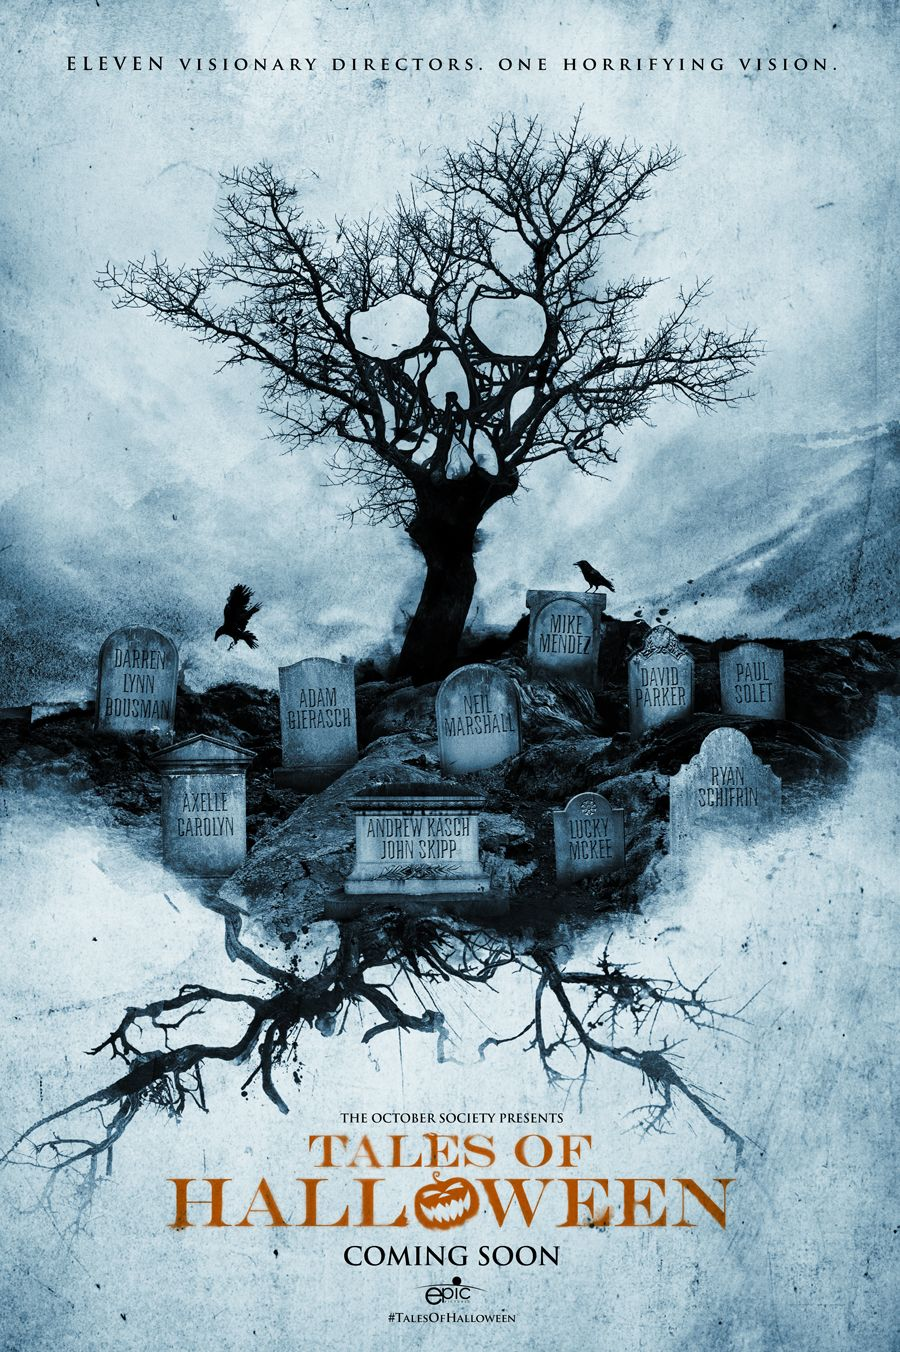 new details for horror anthology tales of halloween - G Halloween Movies